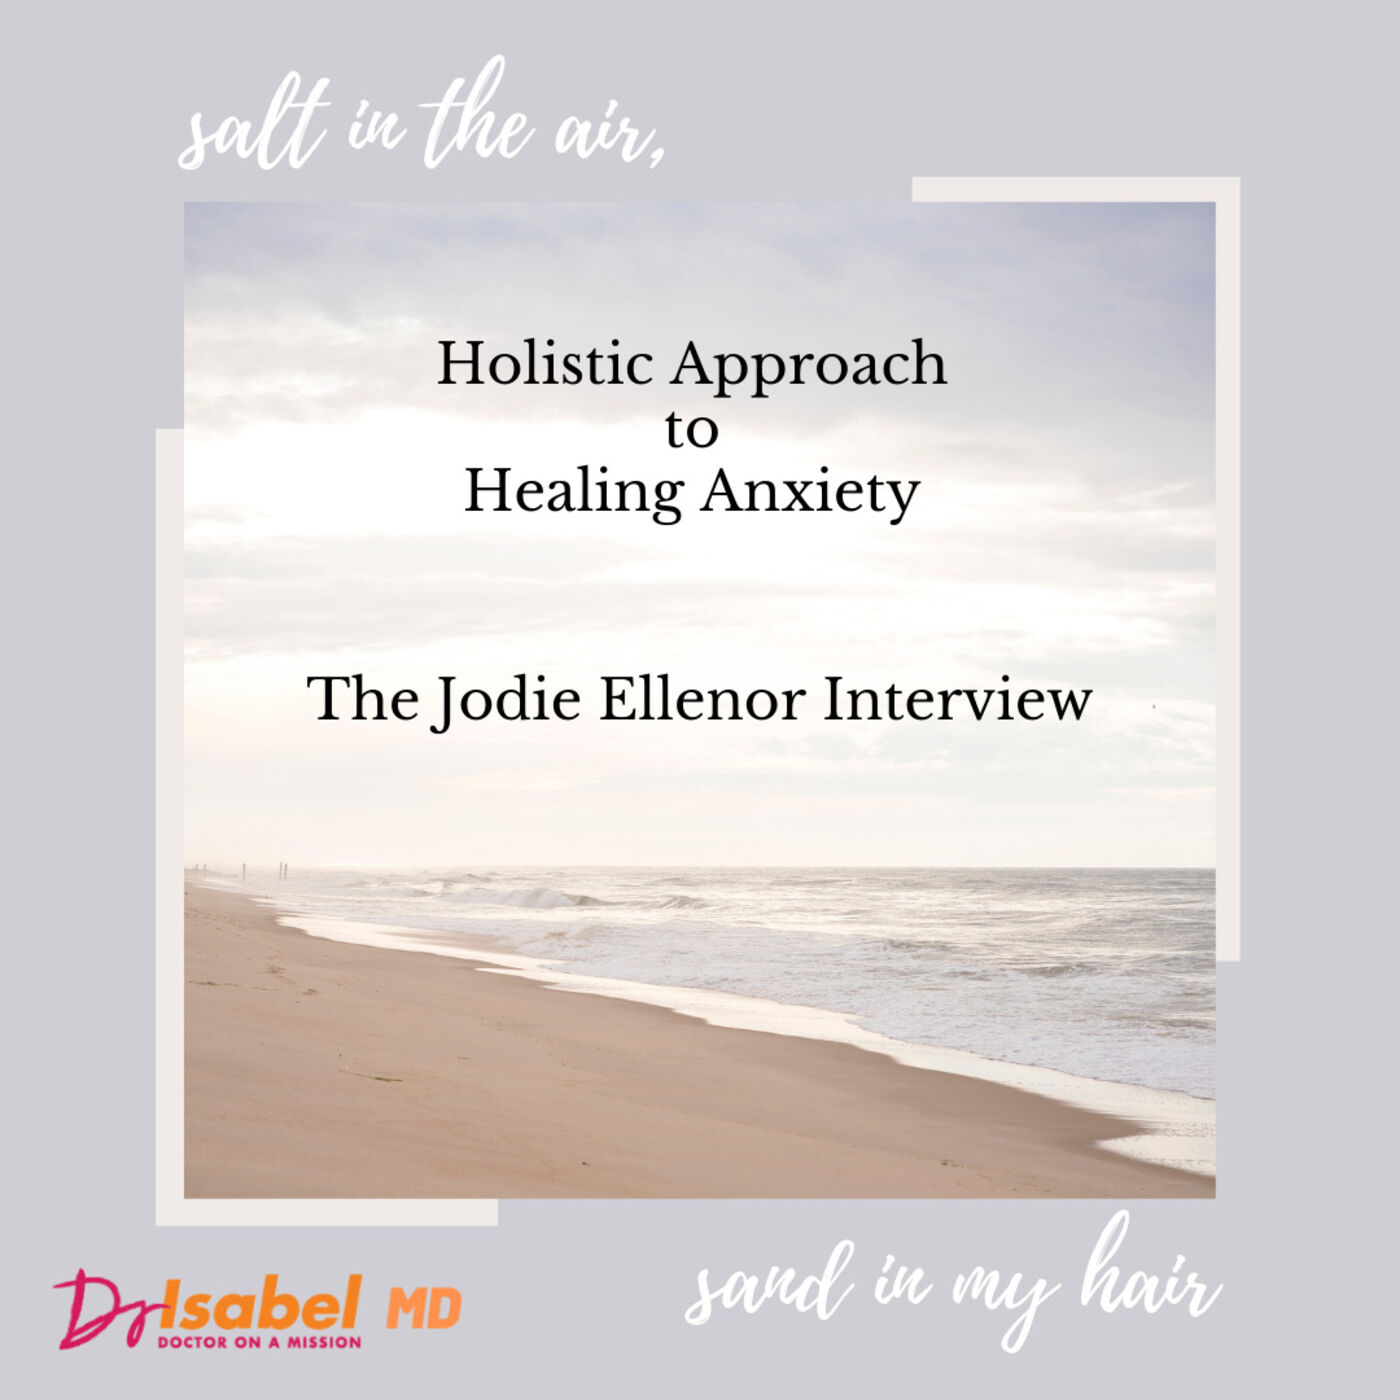 Holistic Approach to Healing Anxiety/ The Jodie Ellenor Interview